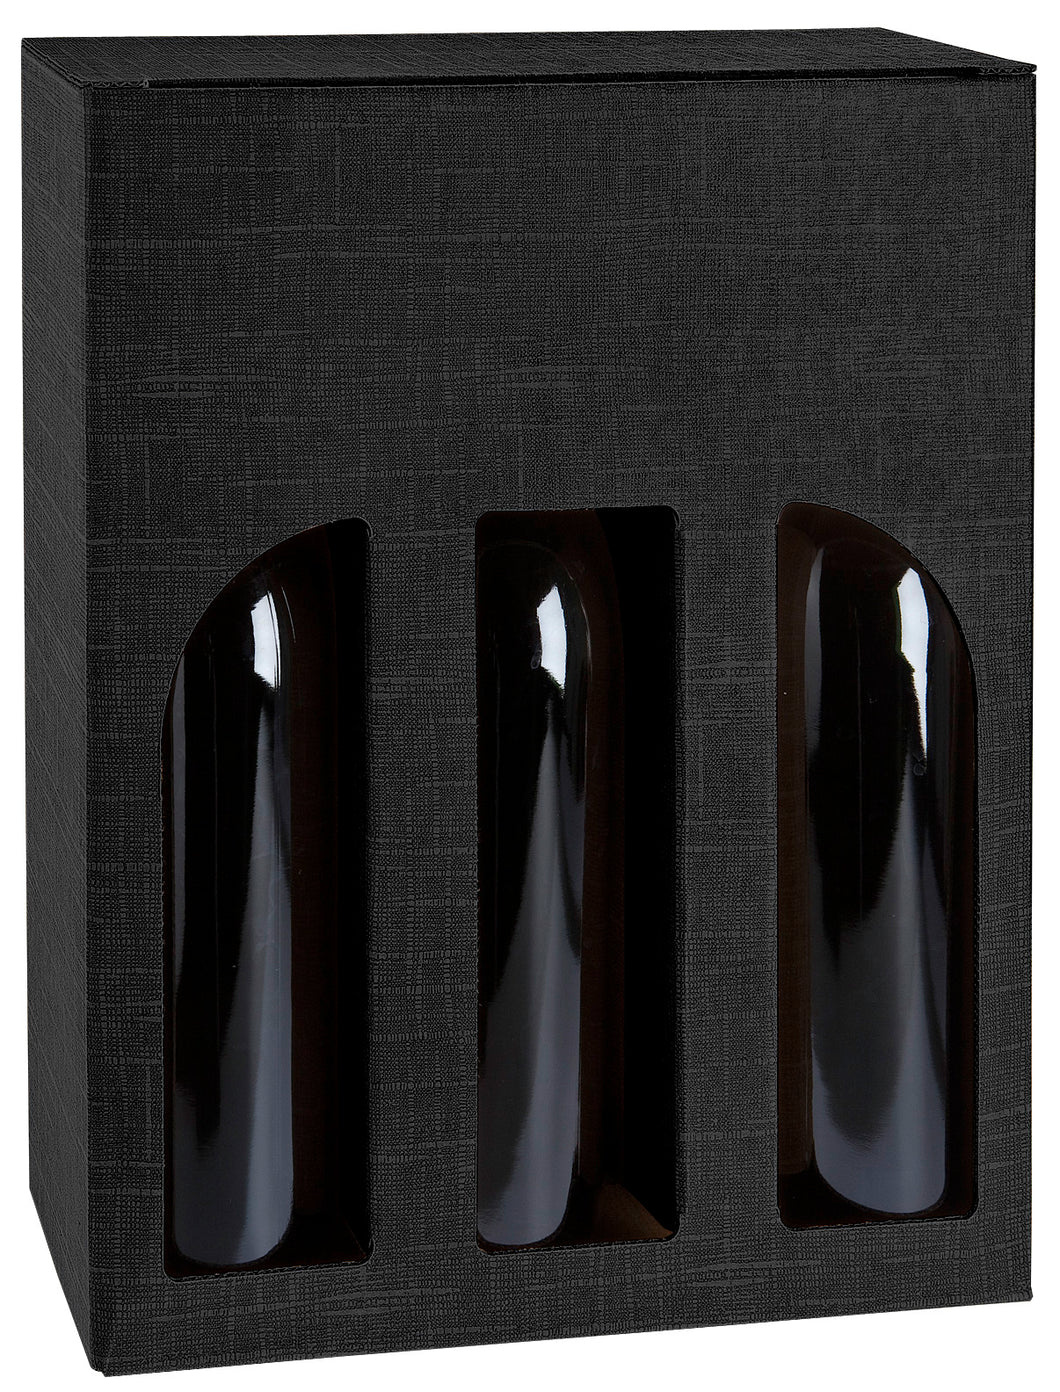 Scala grip hole box with window for 3 bottles in black (x25)